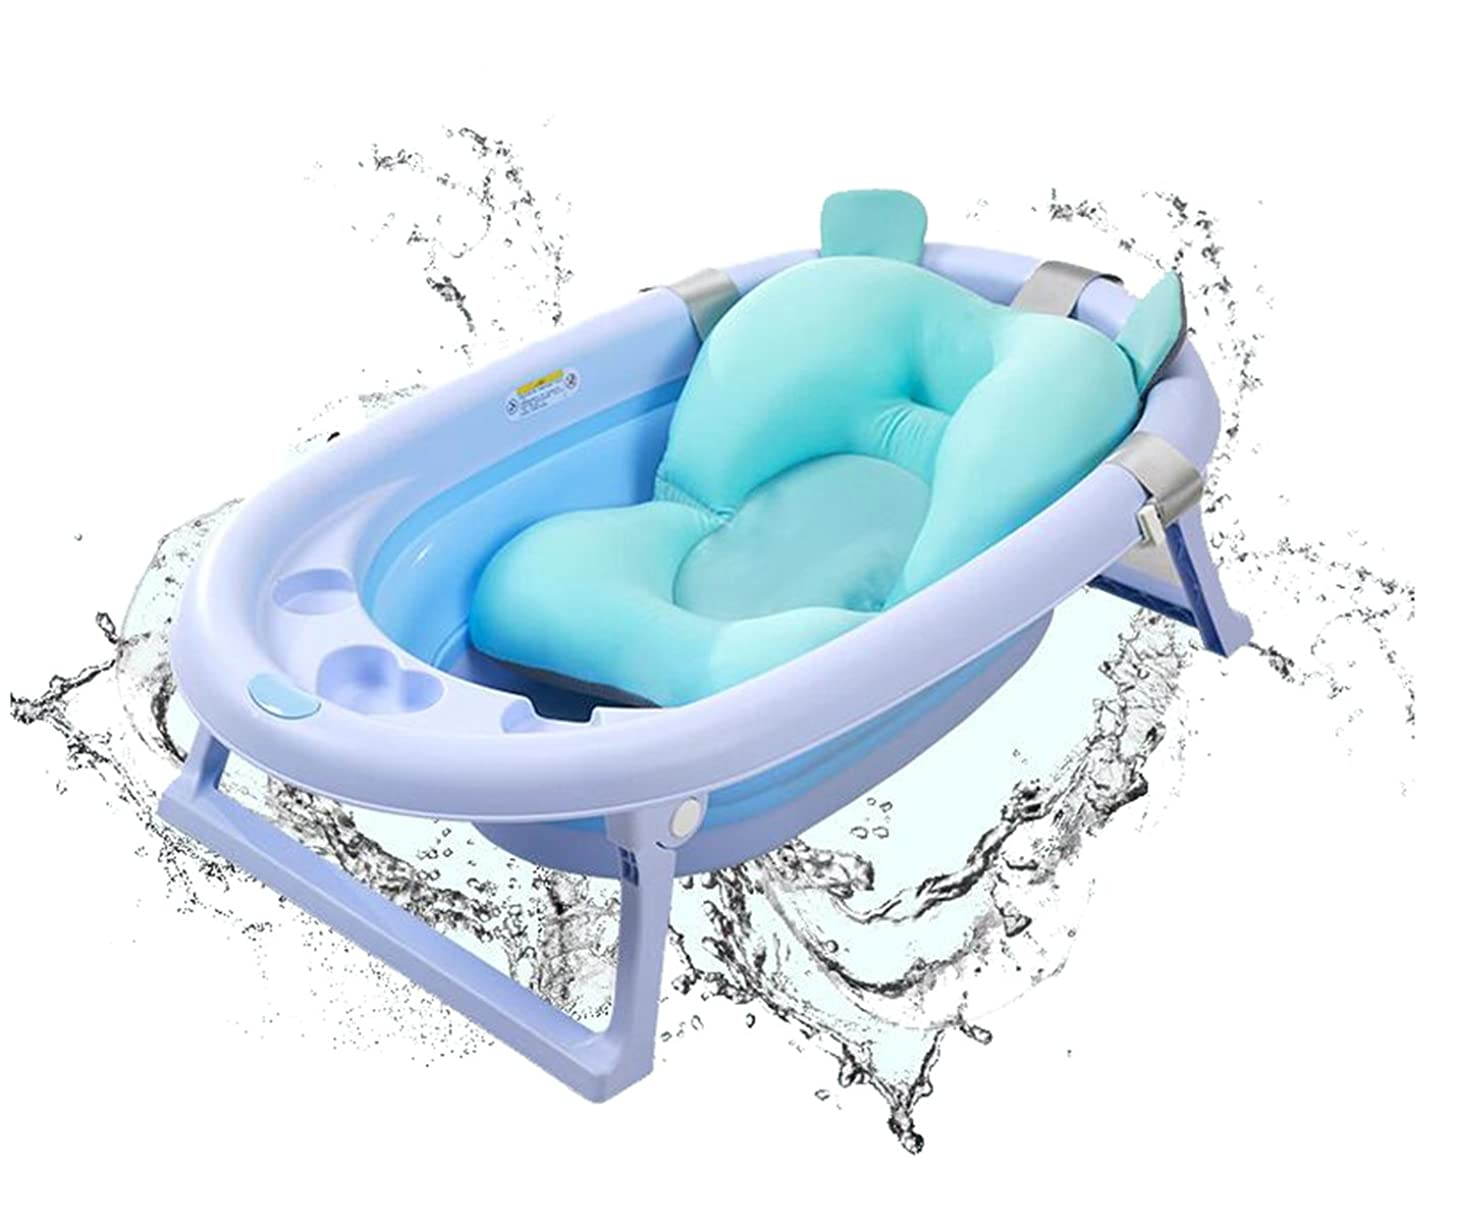 ALXDR Infant Bath Sponge Baby Bathing Support Float Cushion Anti-slip Sling Kid's Booster Cradle Seat 0-1 year old using